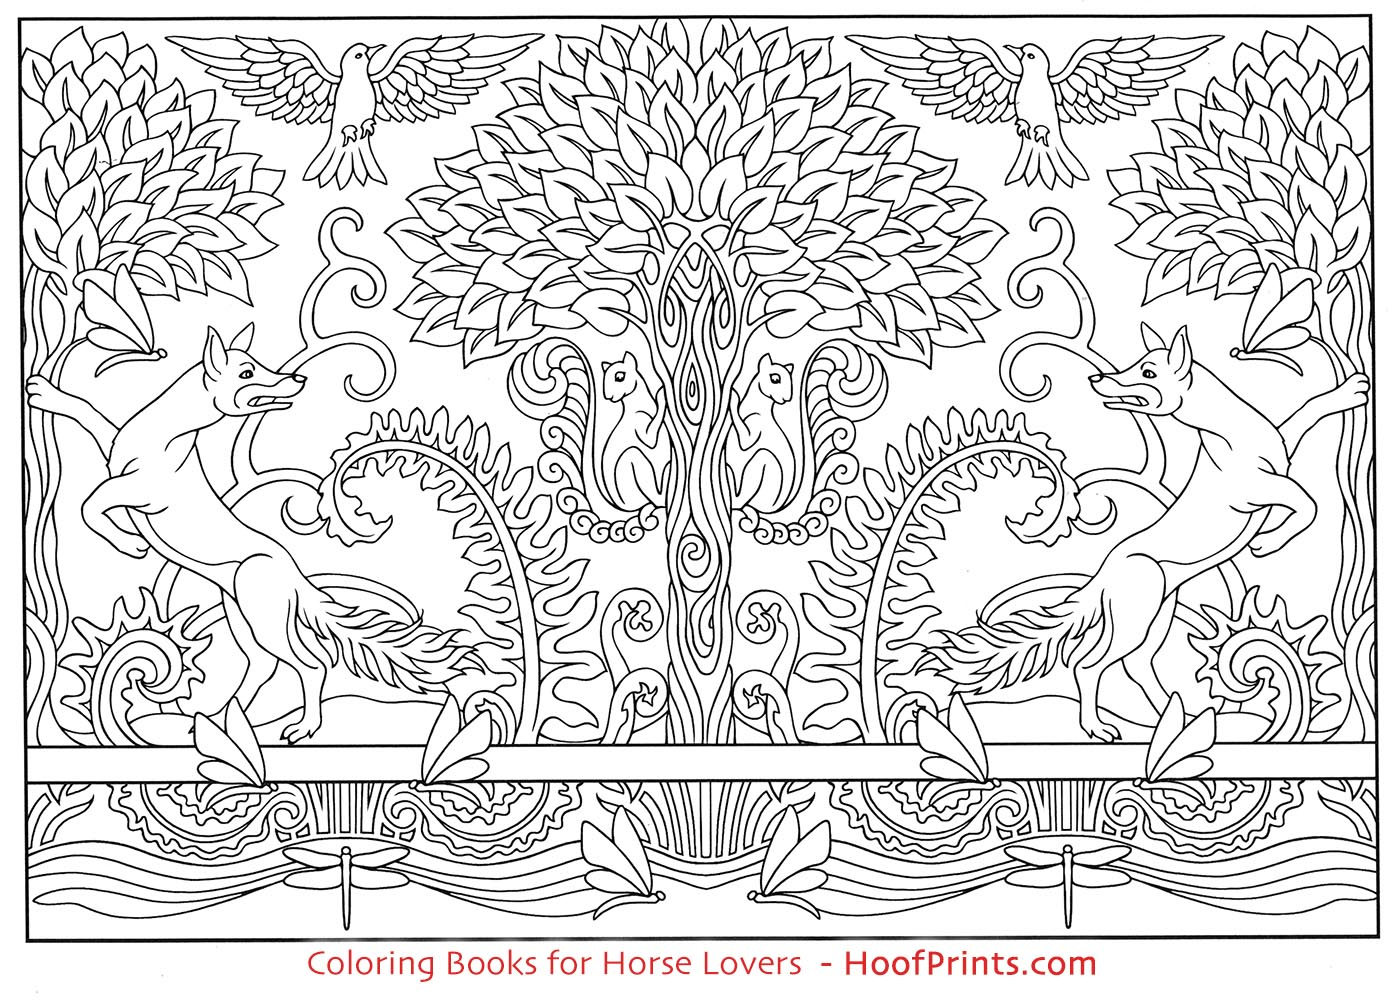 Art Nouveau Animal Designs Coloring Book Loading Zoom